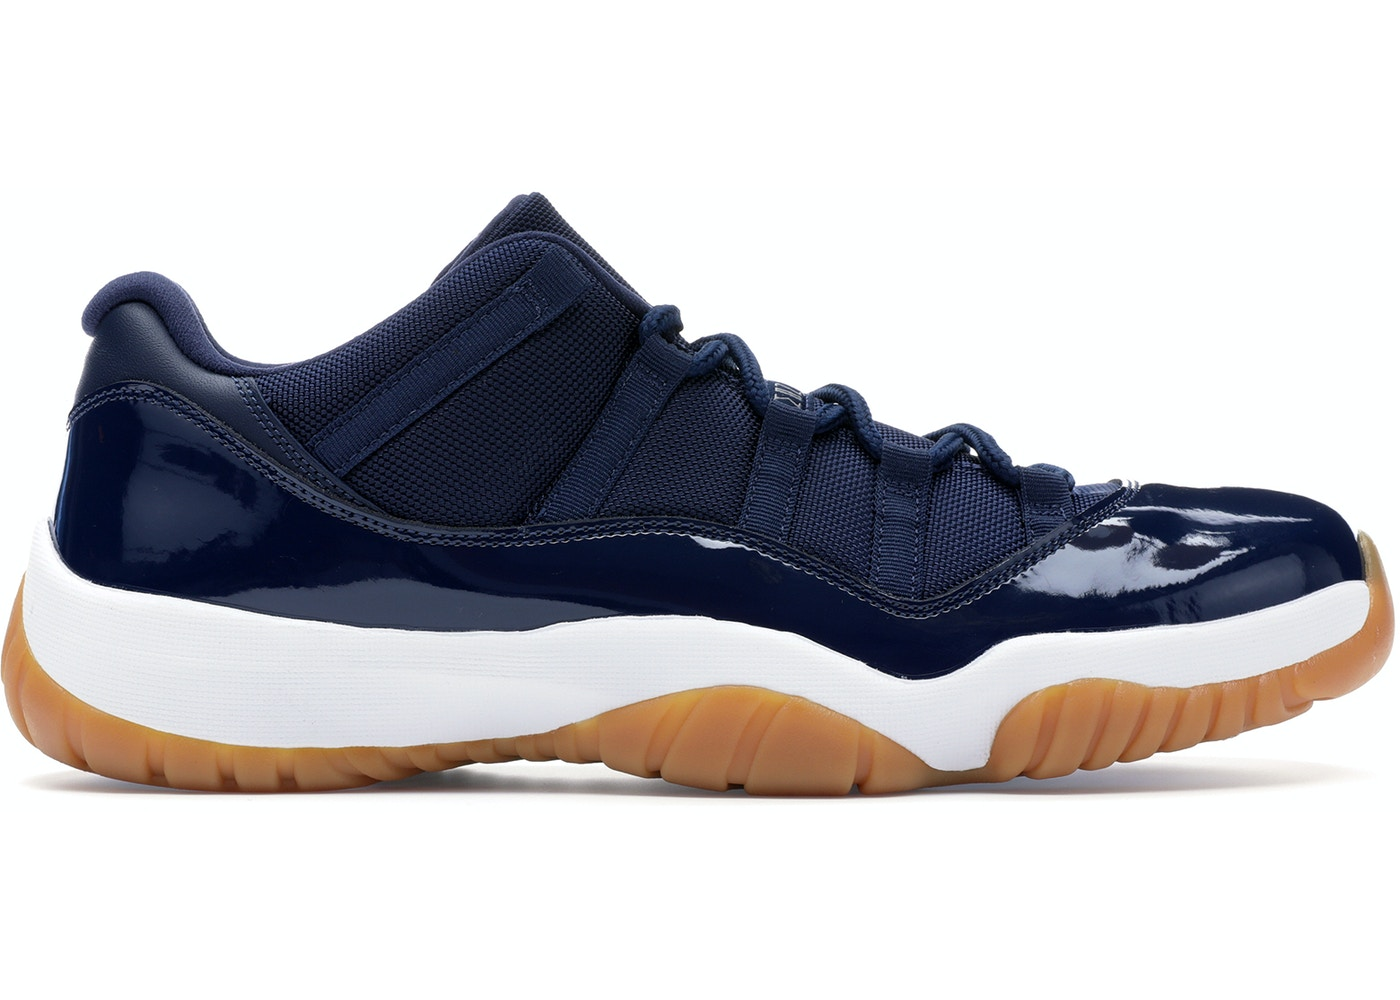 best website 83ff4 1cd7d Jordan 11 Retro Low Midnight Navy - 528895-405